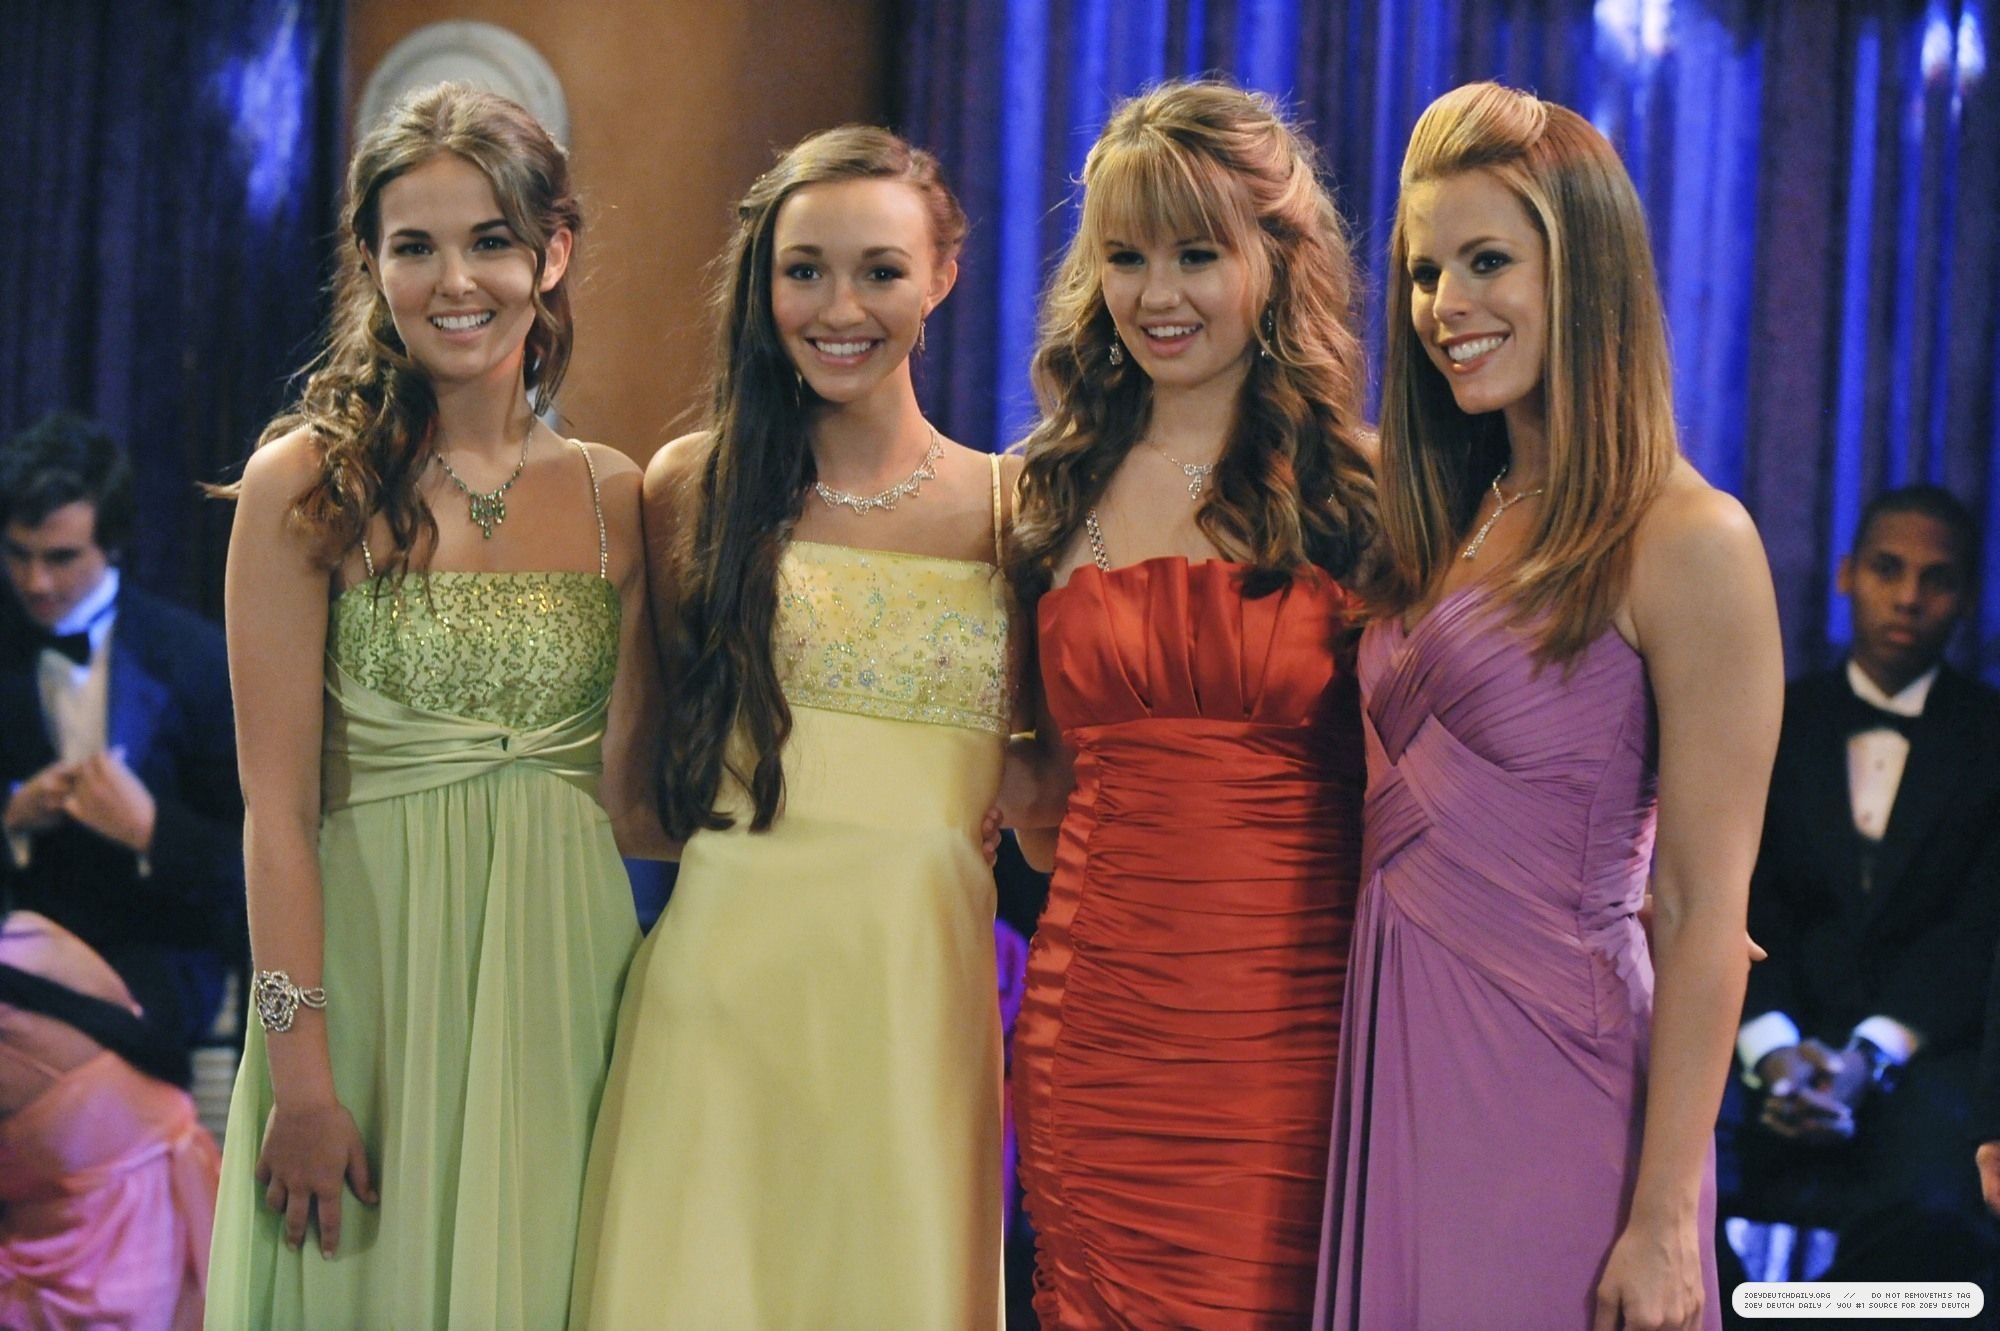 The-Suite-Life-on-Deck-stills-3x21-Prom-Night-zoey-deutch-34682886 ...